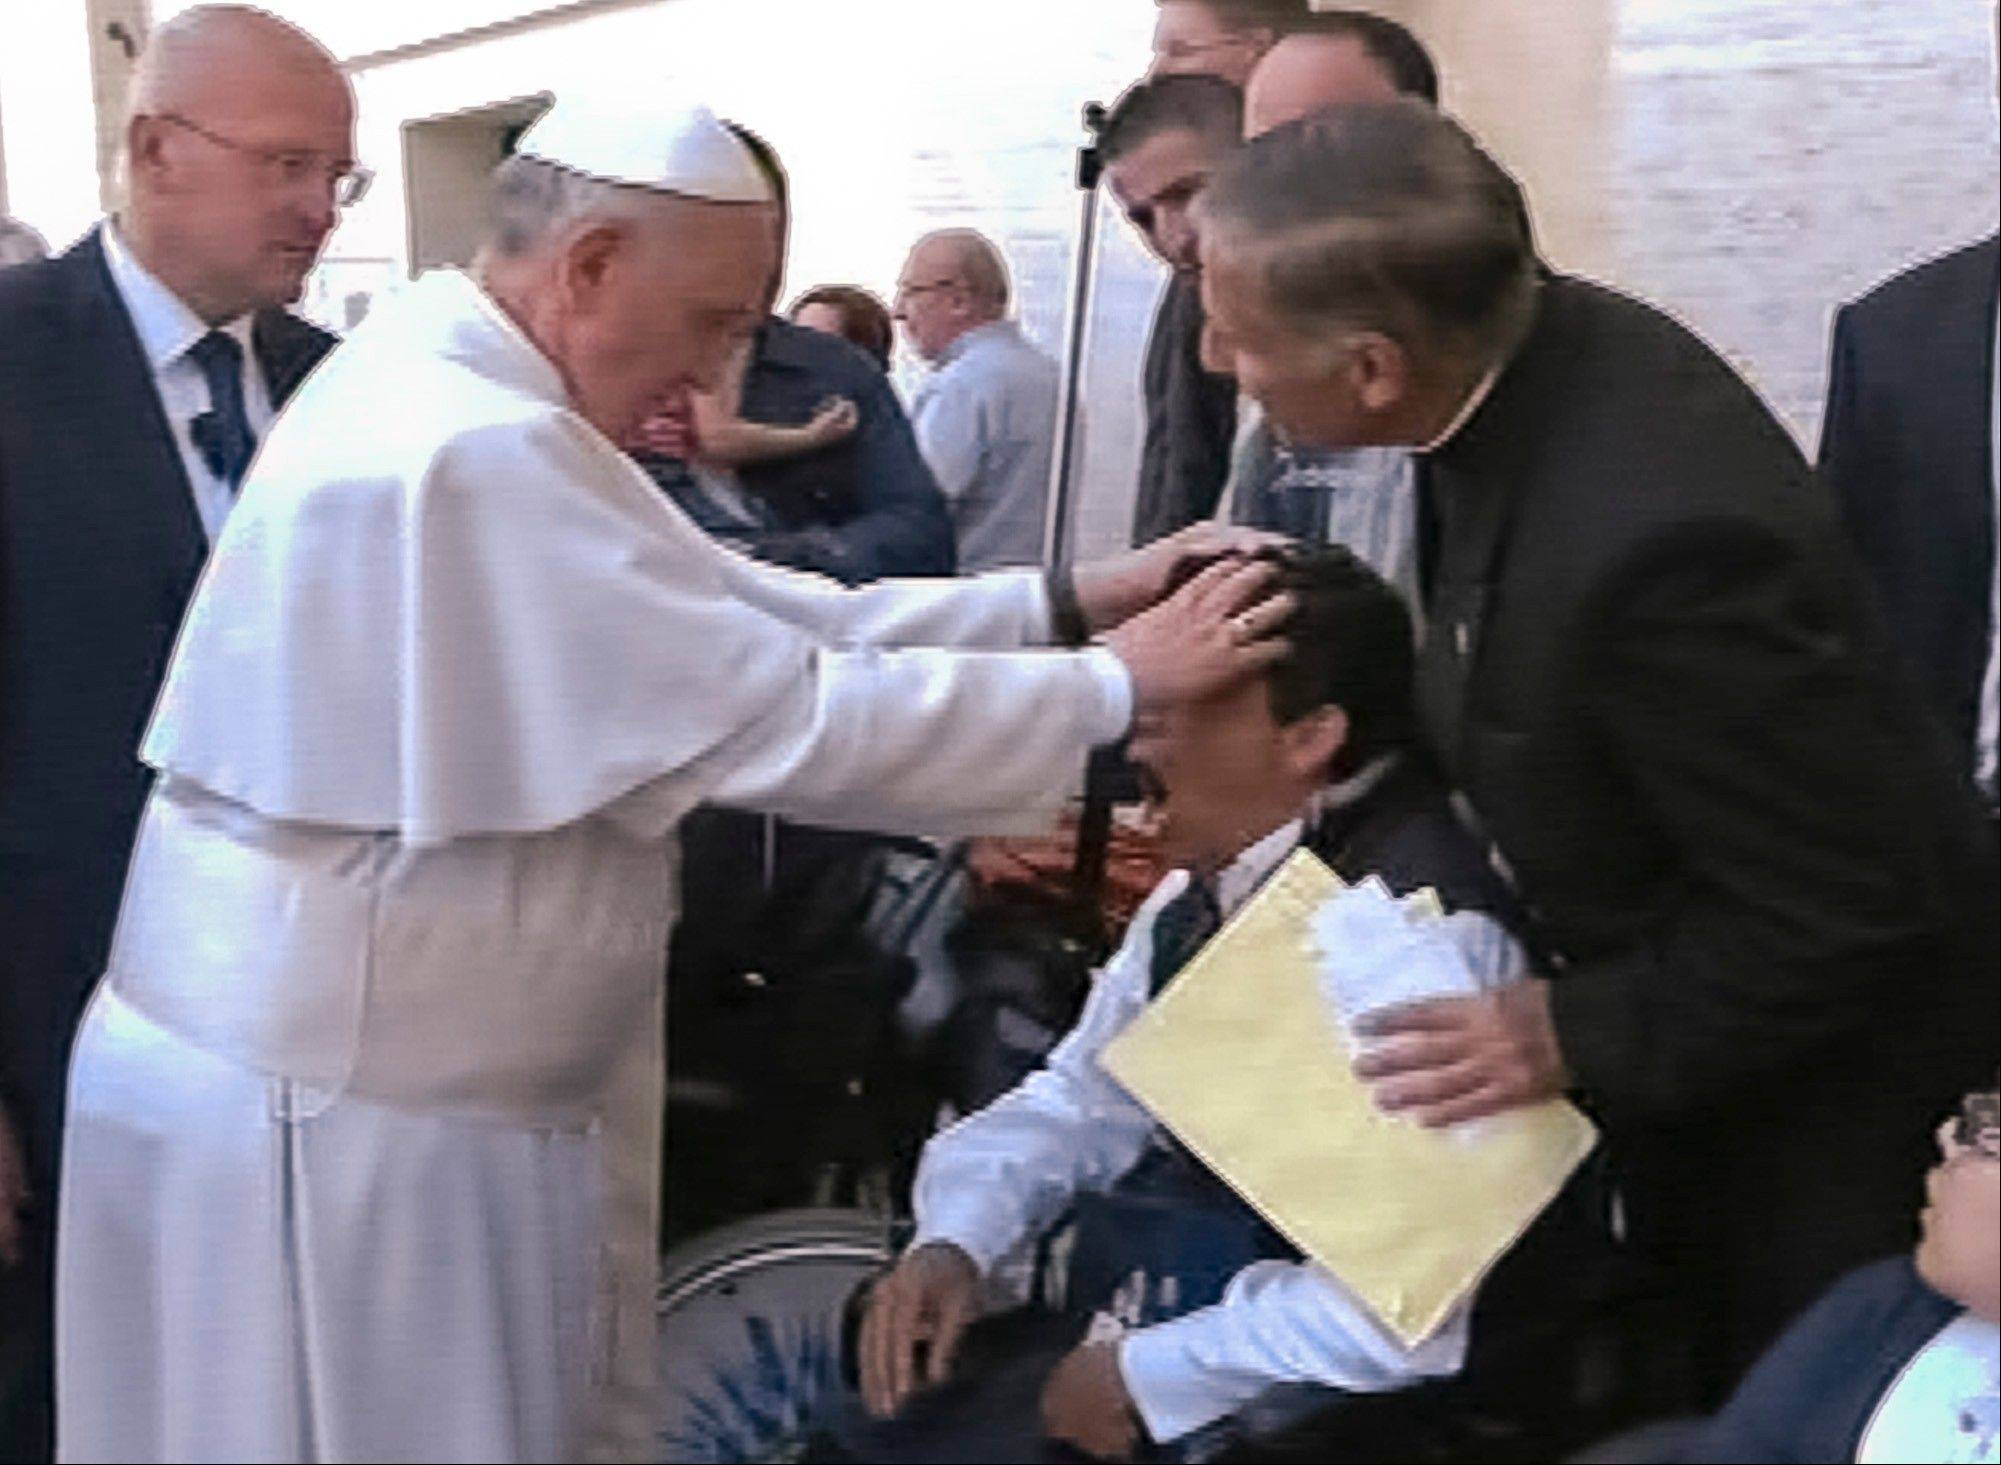 In this image made from video provided by APTN, Pope Francis lays his hands on the head of a young man on Sunday, May 19, 2013, after celebrating Mass in St. Peter's Square. The young man heaved deeply a half-dozen times, convulsed and shook, and then slumped in his wheelchair as Francis prayed over him. The television station of the Italian bishops' conference said it had surveyed exorcists, who agreed Francis either performed an exorcism or a prayer to free the man from the devil. The Vatican was more cautious Tuesday, saying Francis �didn�t intend to perform any exorcism. But as he often does for the sick or suffering, he simply intended to pray for someone.